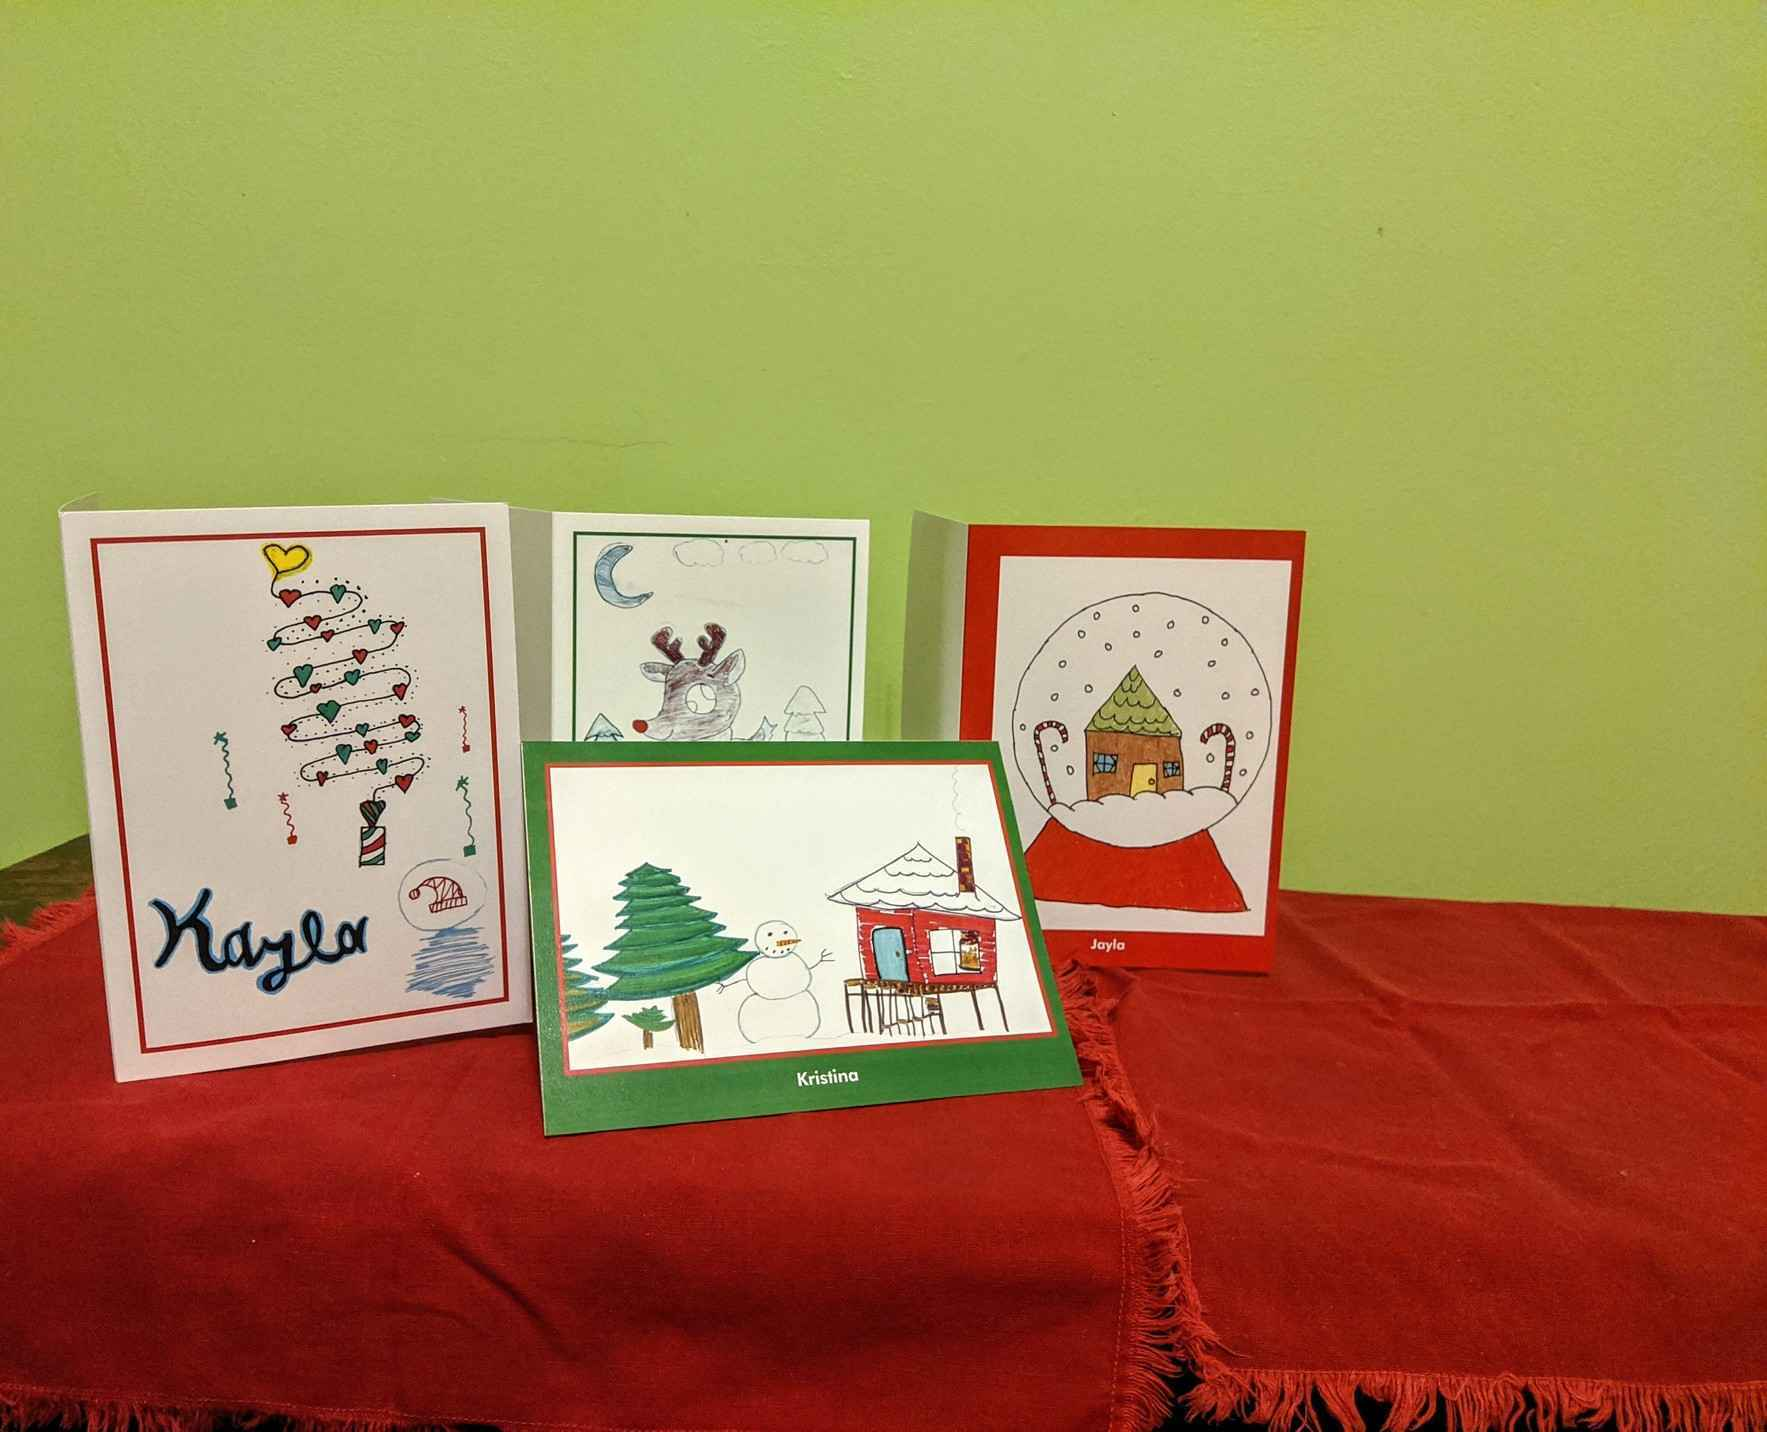 Send cards that honor your family and friends and support community health. image